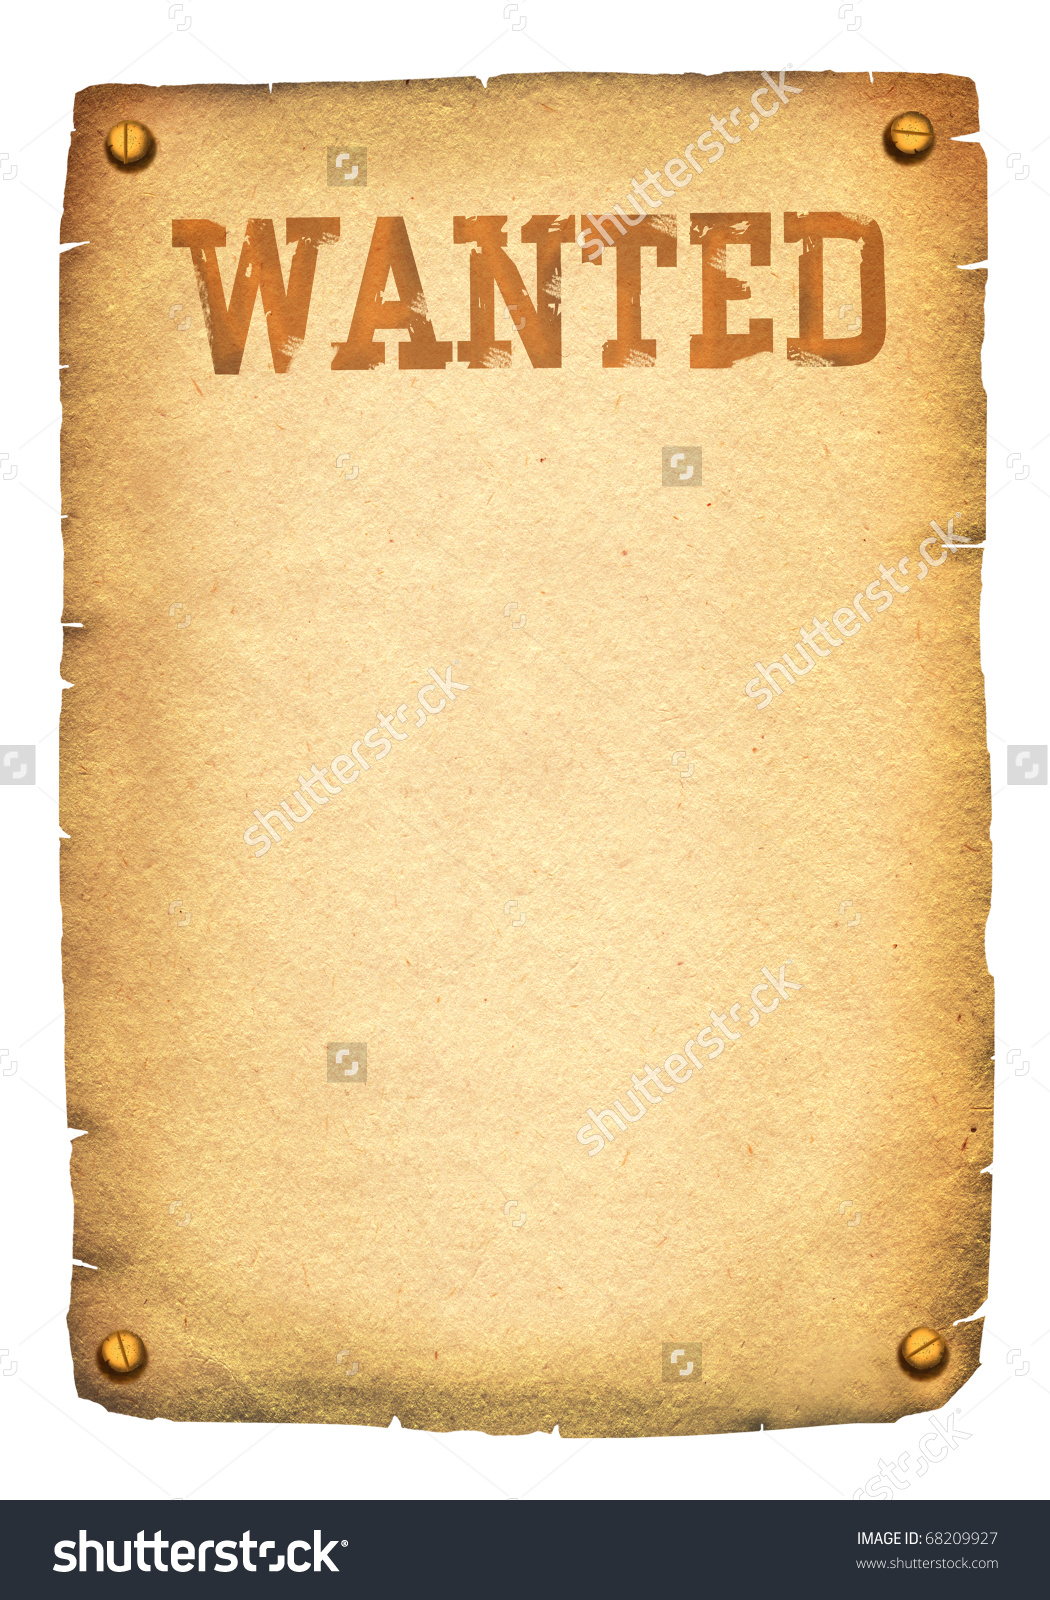 What's the simplest way of fashioning a wanted poster?